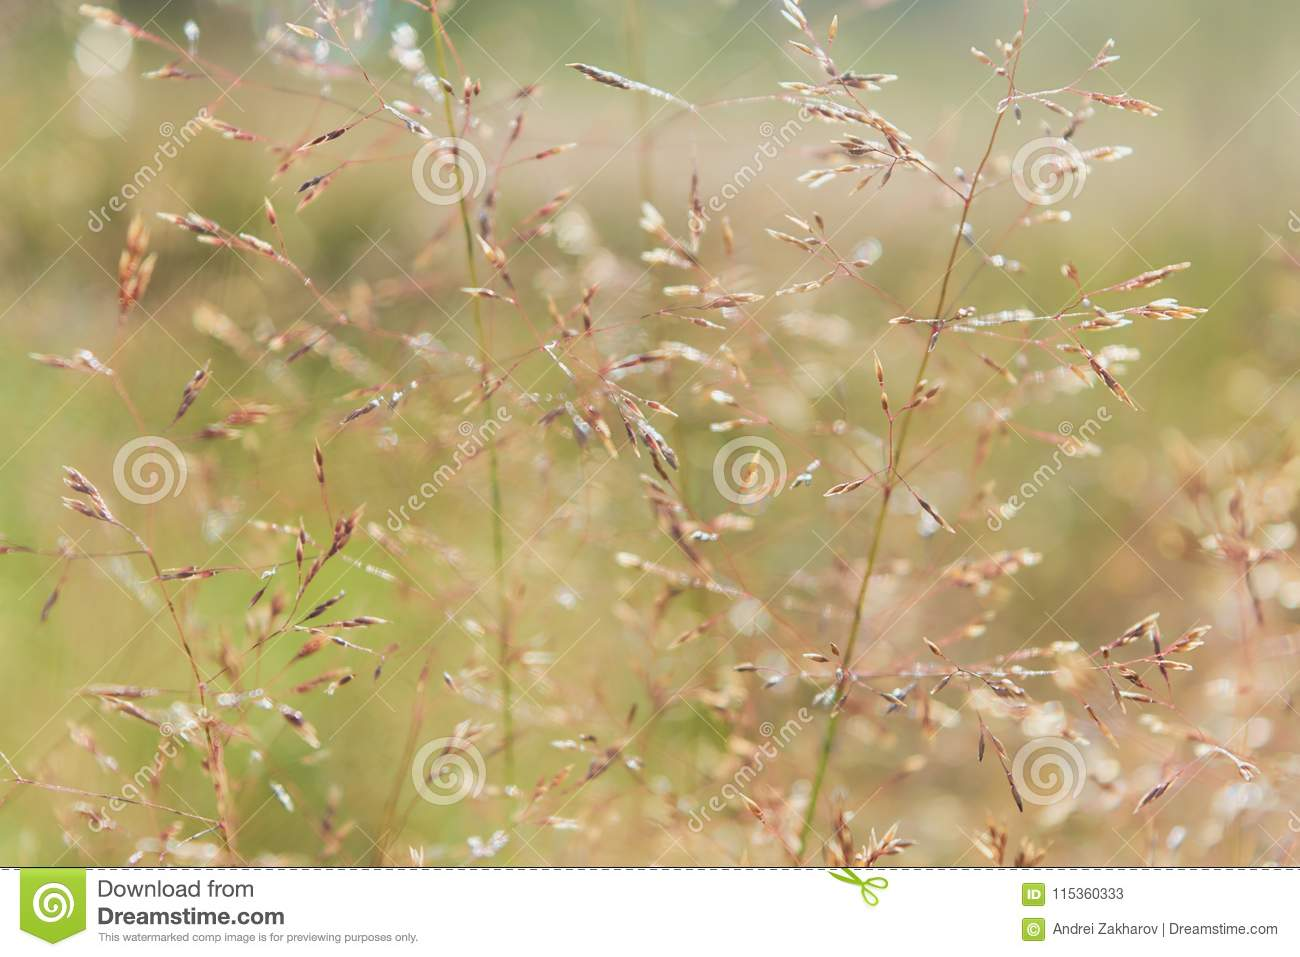 Bluegrass Meadow: Description and Use 6